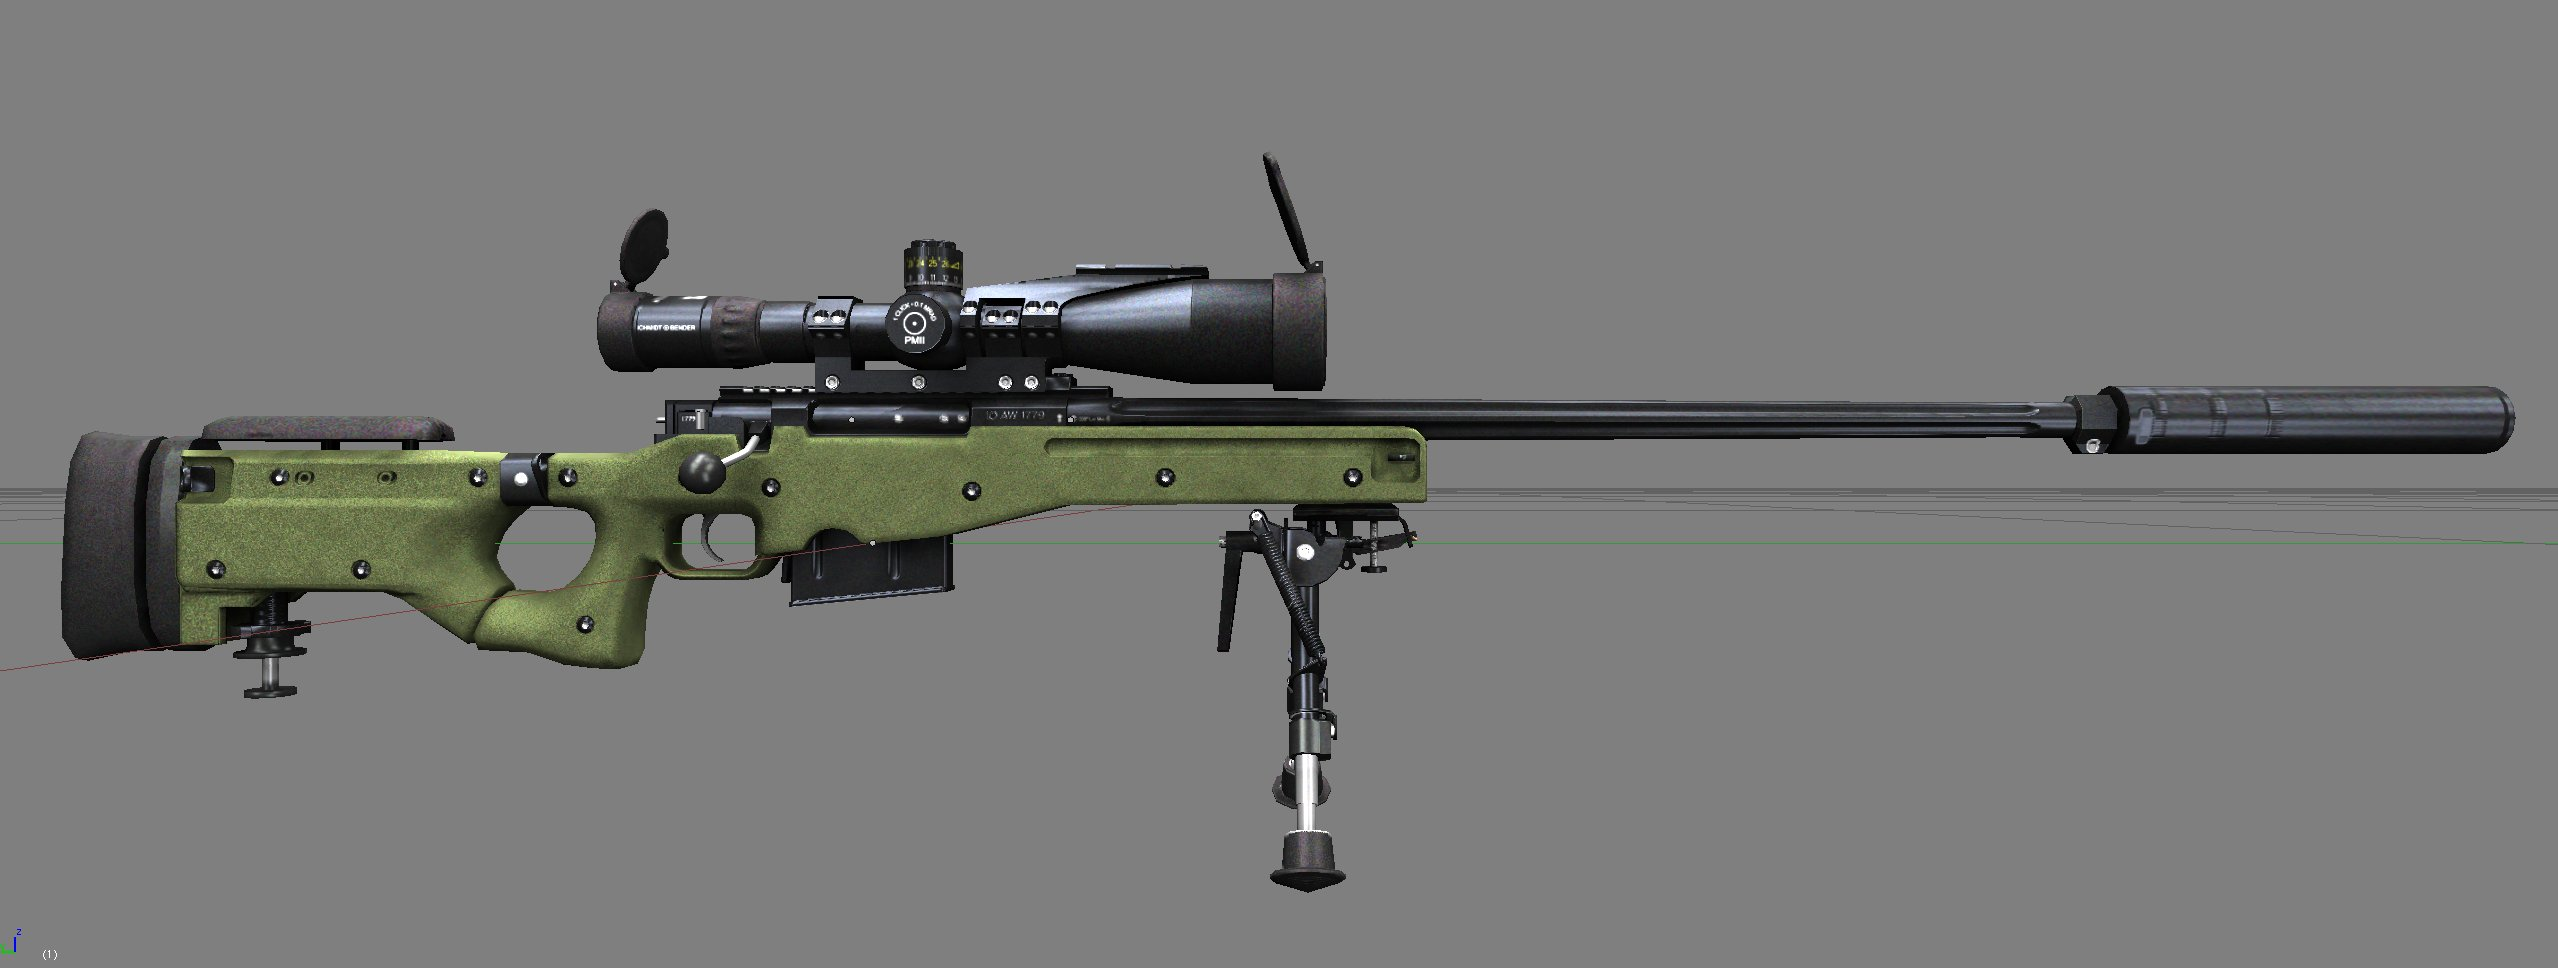 Nice Images Collection: Accuracy International Aw 338 Sniper Rifle Desktop Wallpapers